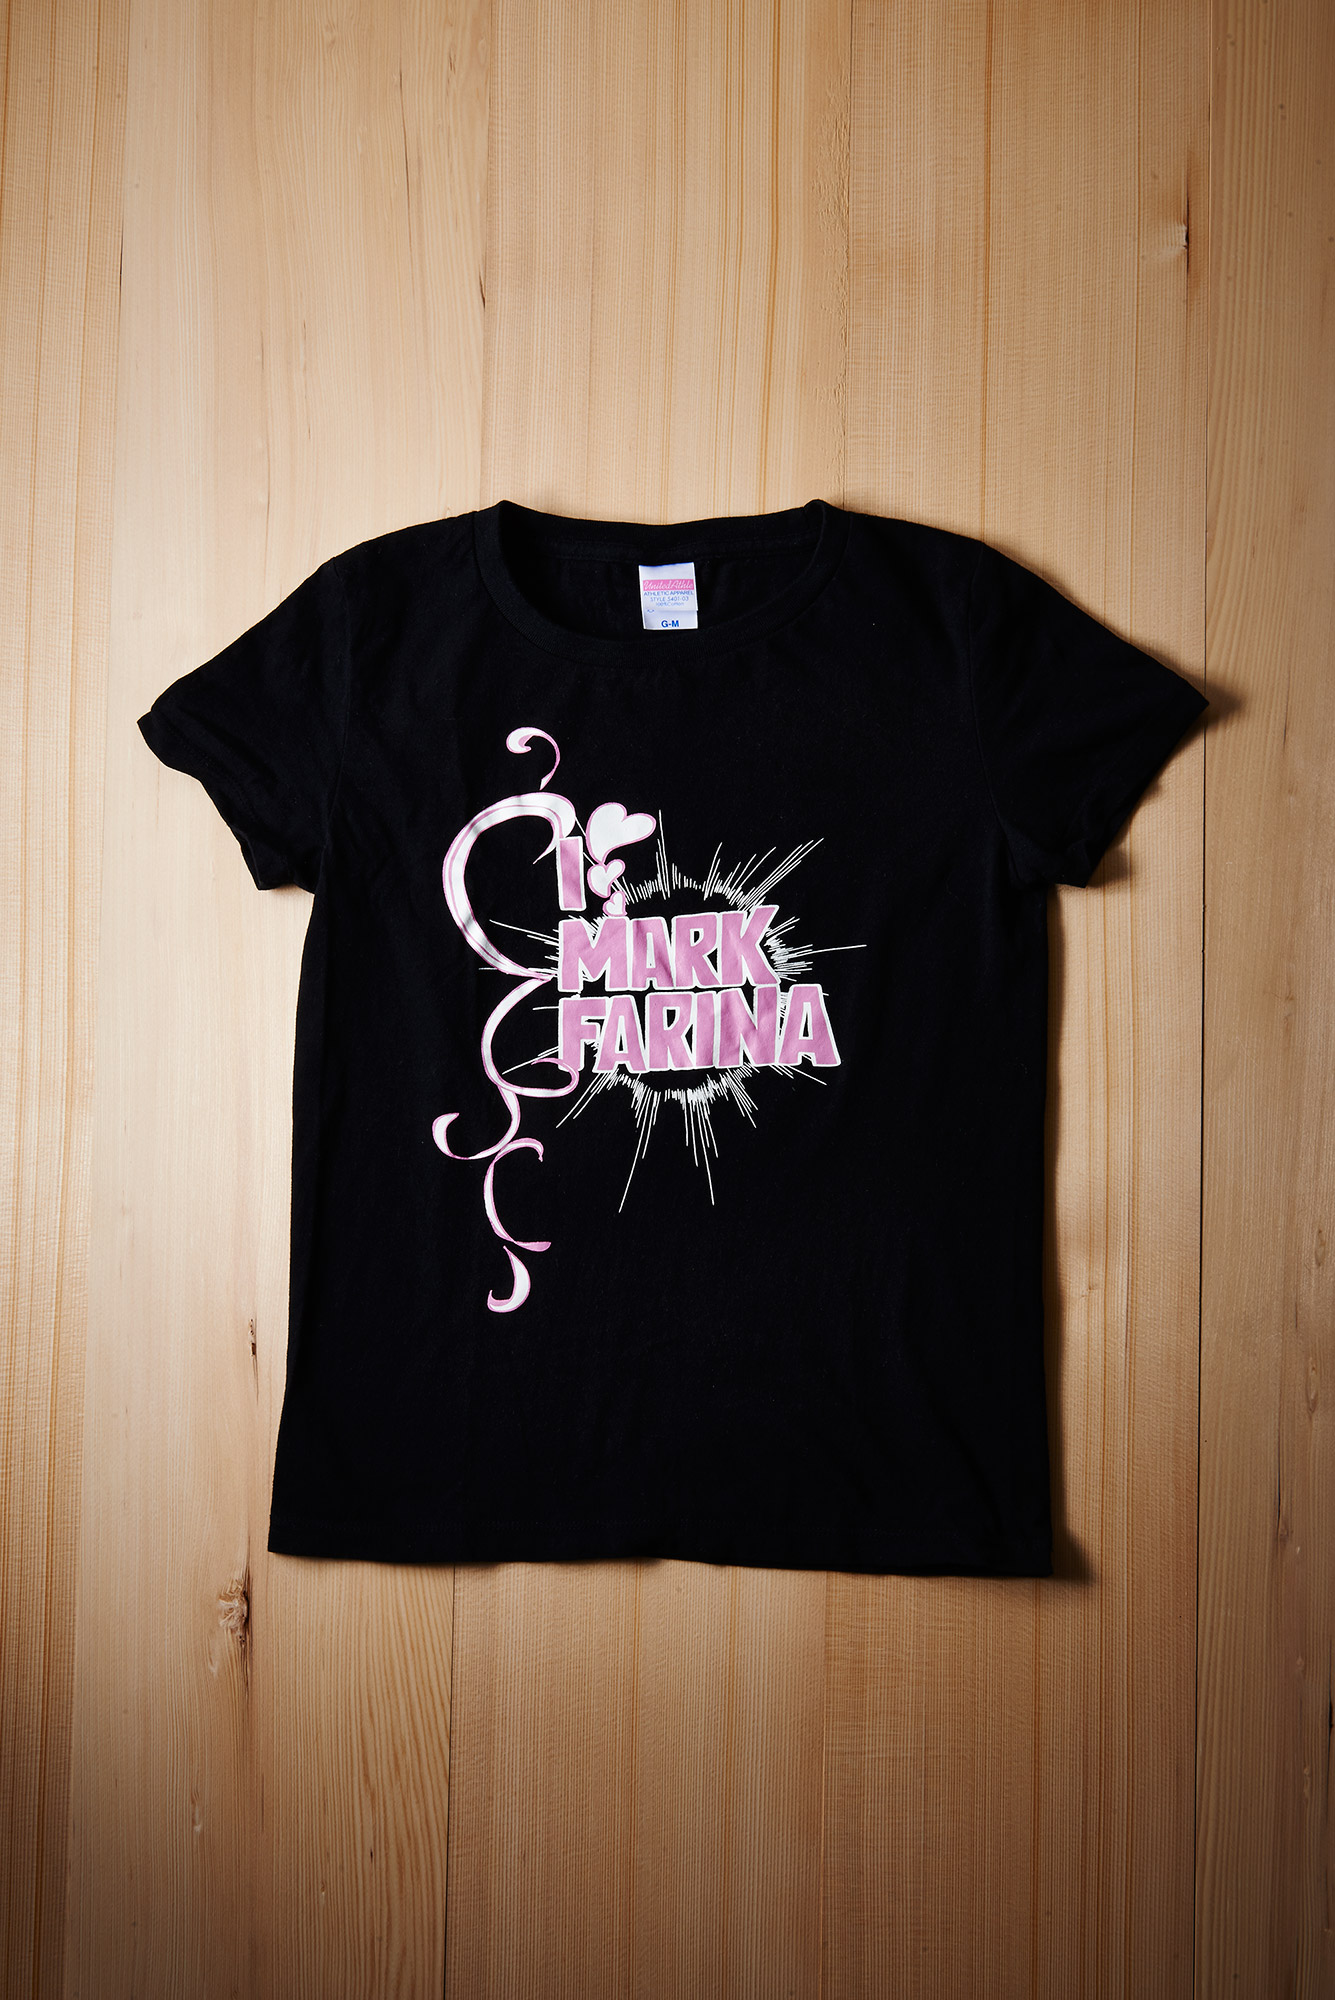 Mark Farina T Shirts